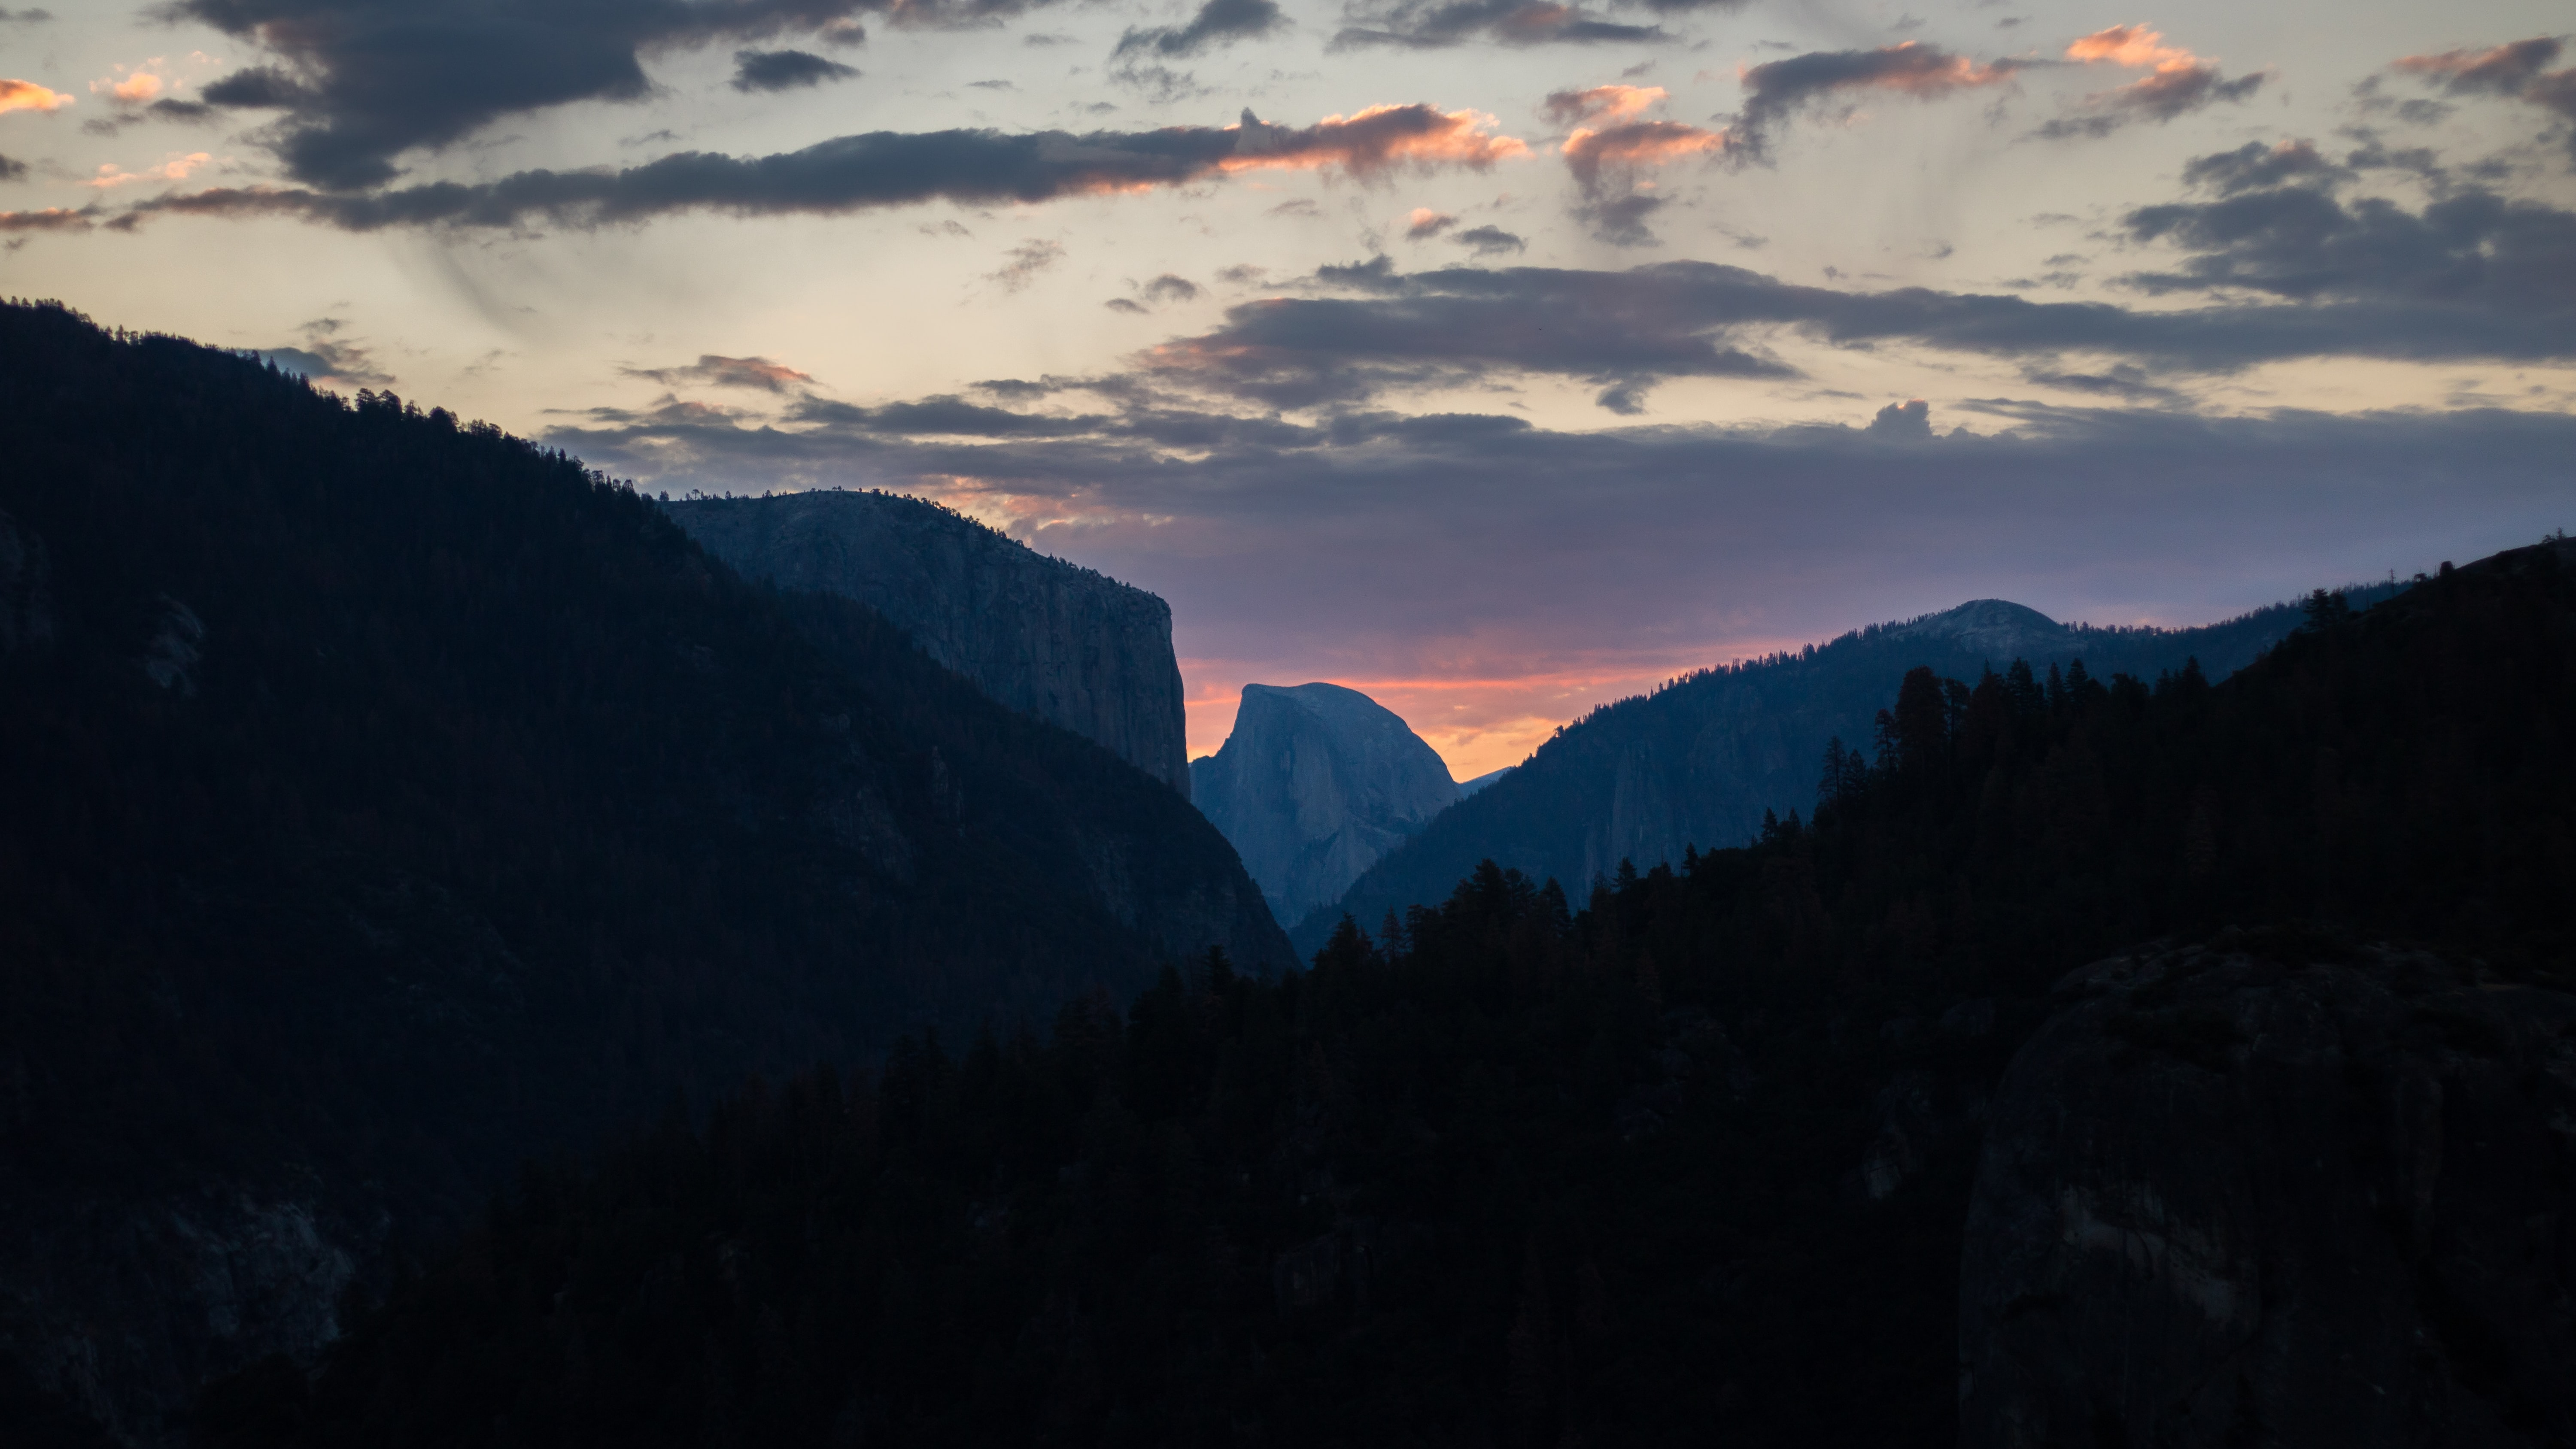 Distant view of Yosemite Valley in the evening